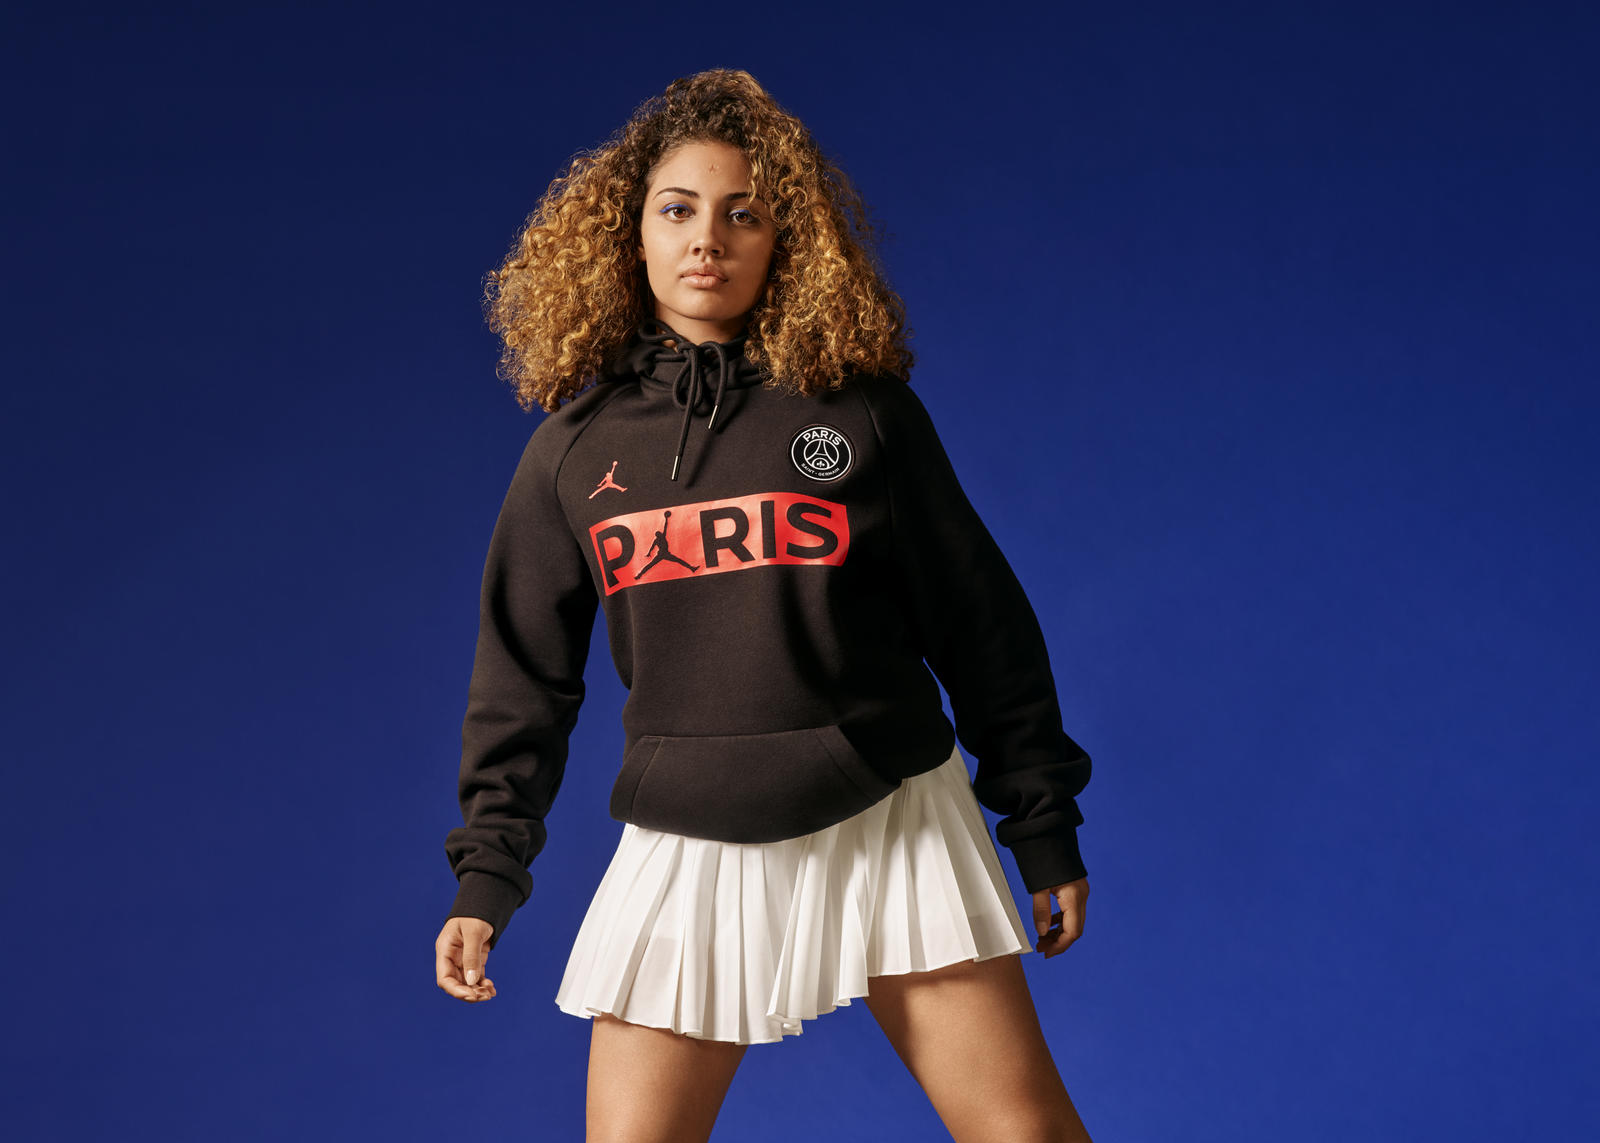 Paris Saint-Germain 2019-20 Fourth Kit 0